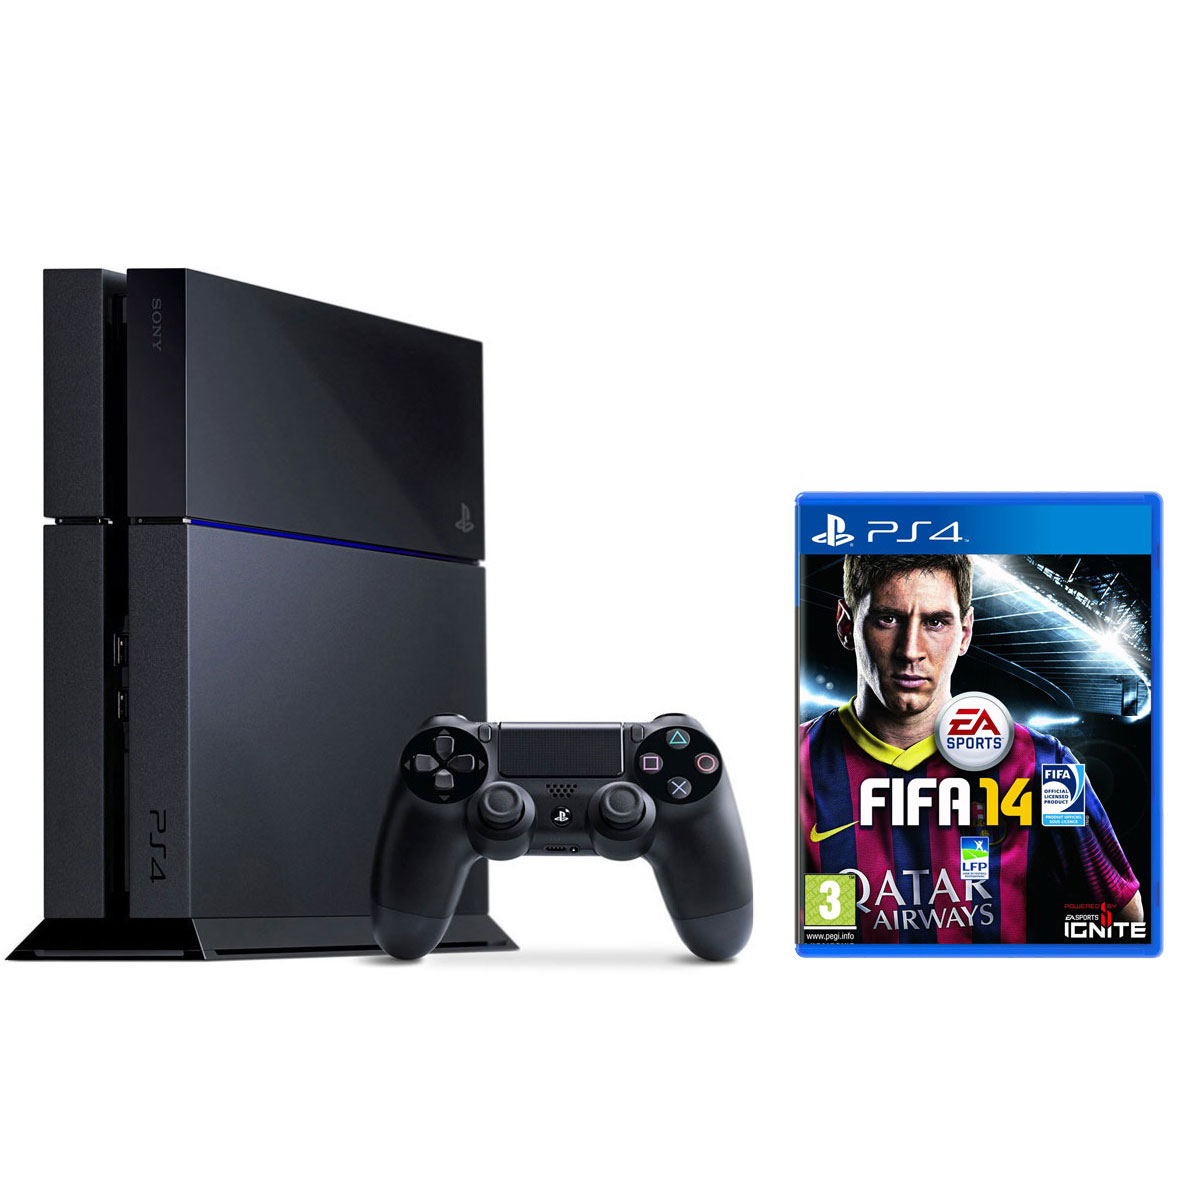 Console de jeux Sony PlayStation 4 + FIFA 14 Console PlayStation 4 500 Go + Une Manette Dual Shock 4 + FIFA 14